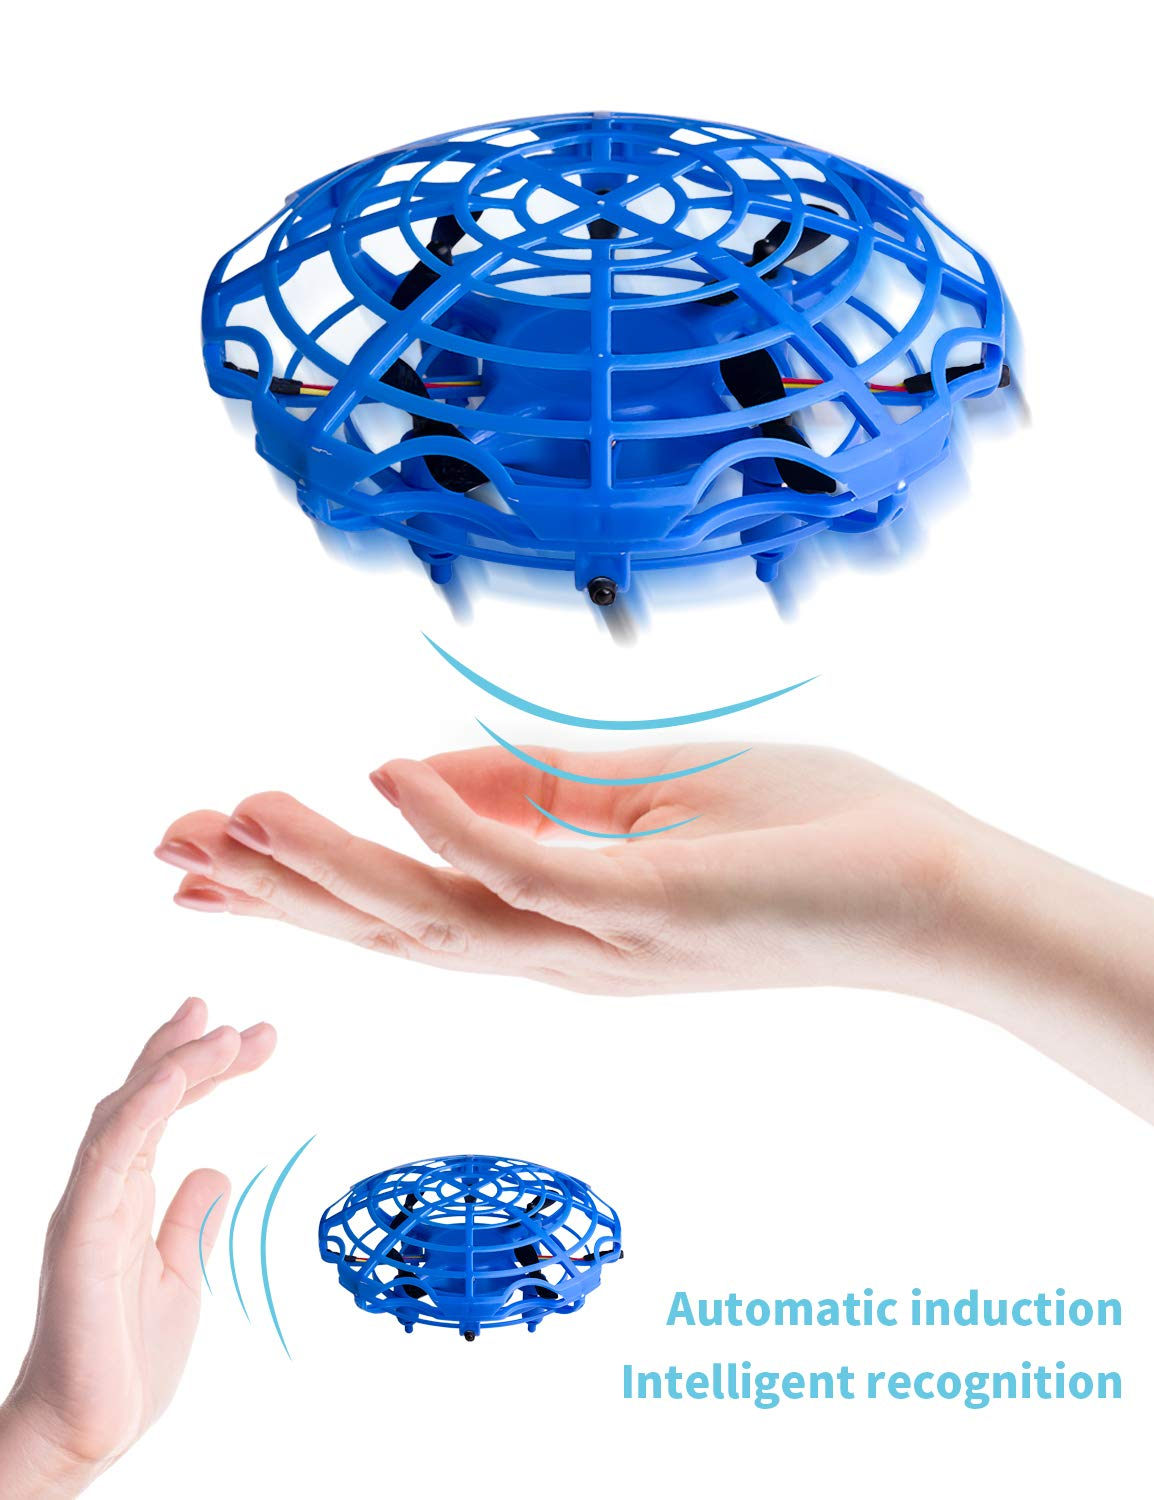 Refasy 3 Year Old Girl Gift Ideas, UFO Hand-Controlled Mini Drone Helicopter Flying Ball Toys for 3-12 Year Old Boy Outdoor Toys LED Light for Kid 8-12 Year Old or Adults Blue by Refasy (Image #3)